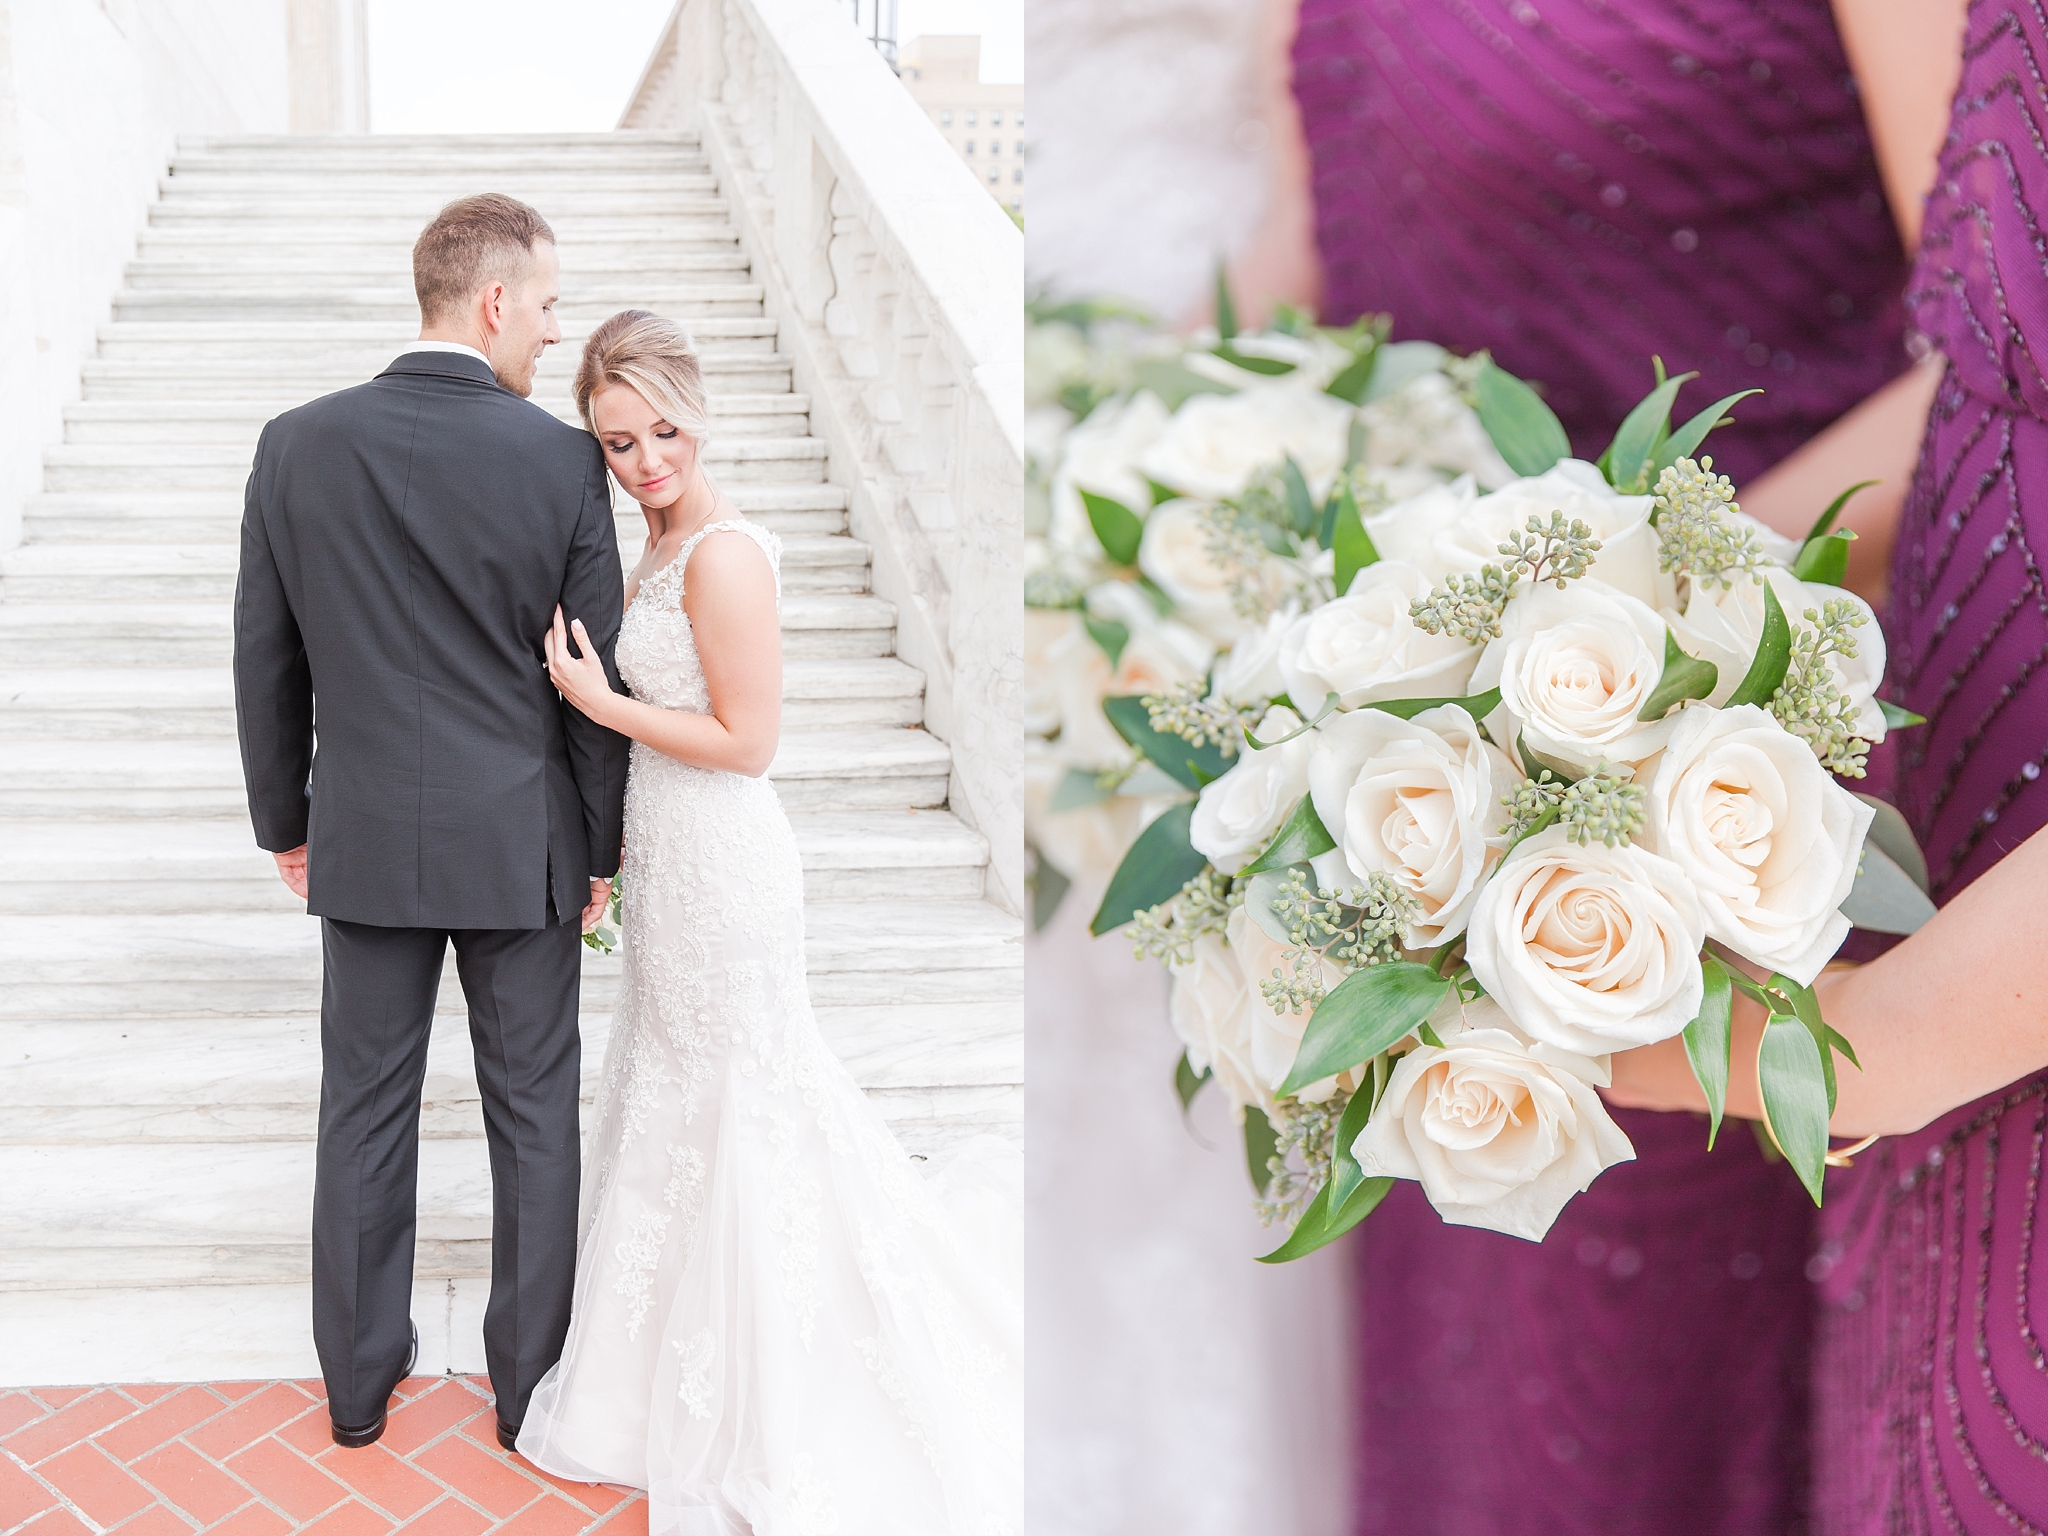 candid-romantic-wedding-photos-at-the-masonic-temple-belle-isle-detroit-institute-of-arts-in-detroit-michigan-by-courtney-carolyn-photography_0060.jpg